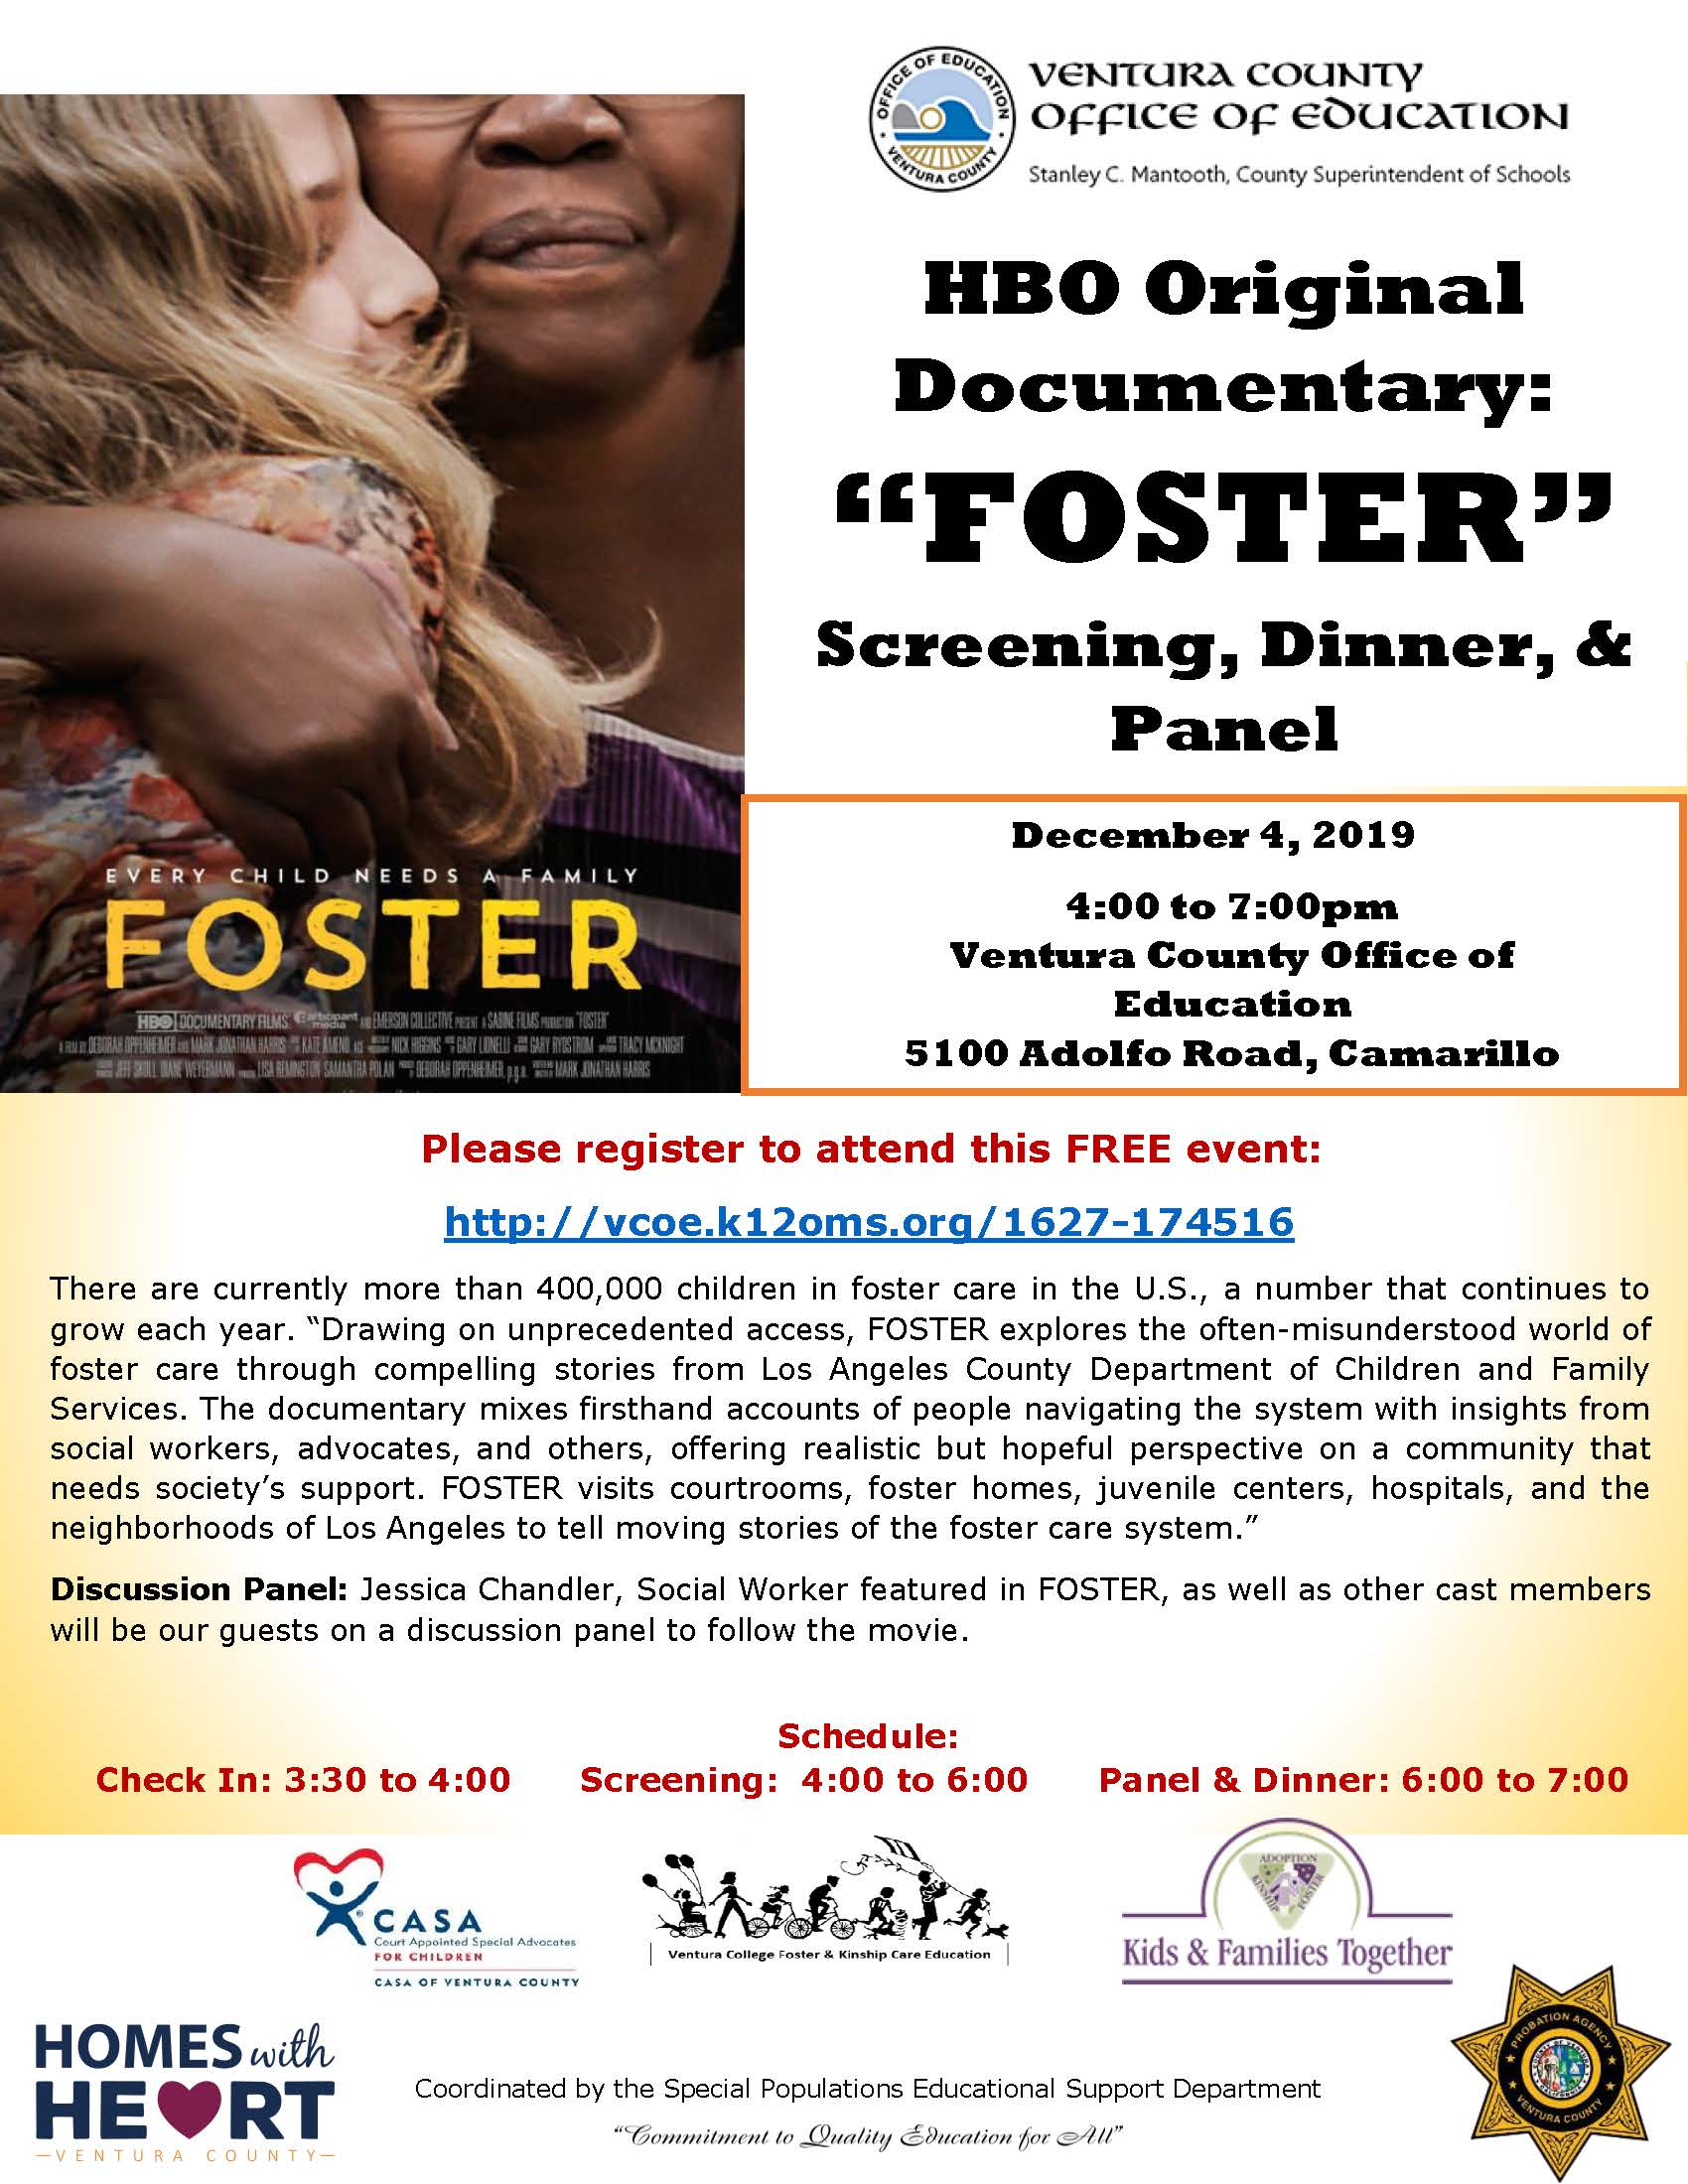 Foster: HBO Documentary Screening, Dinner, and Panel